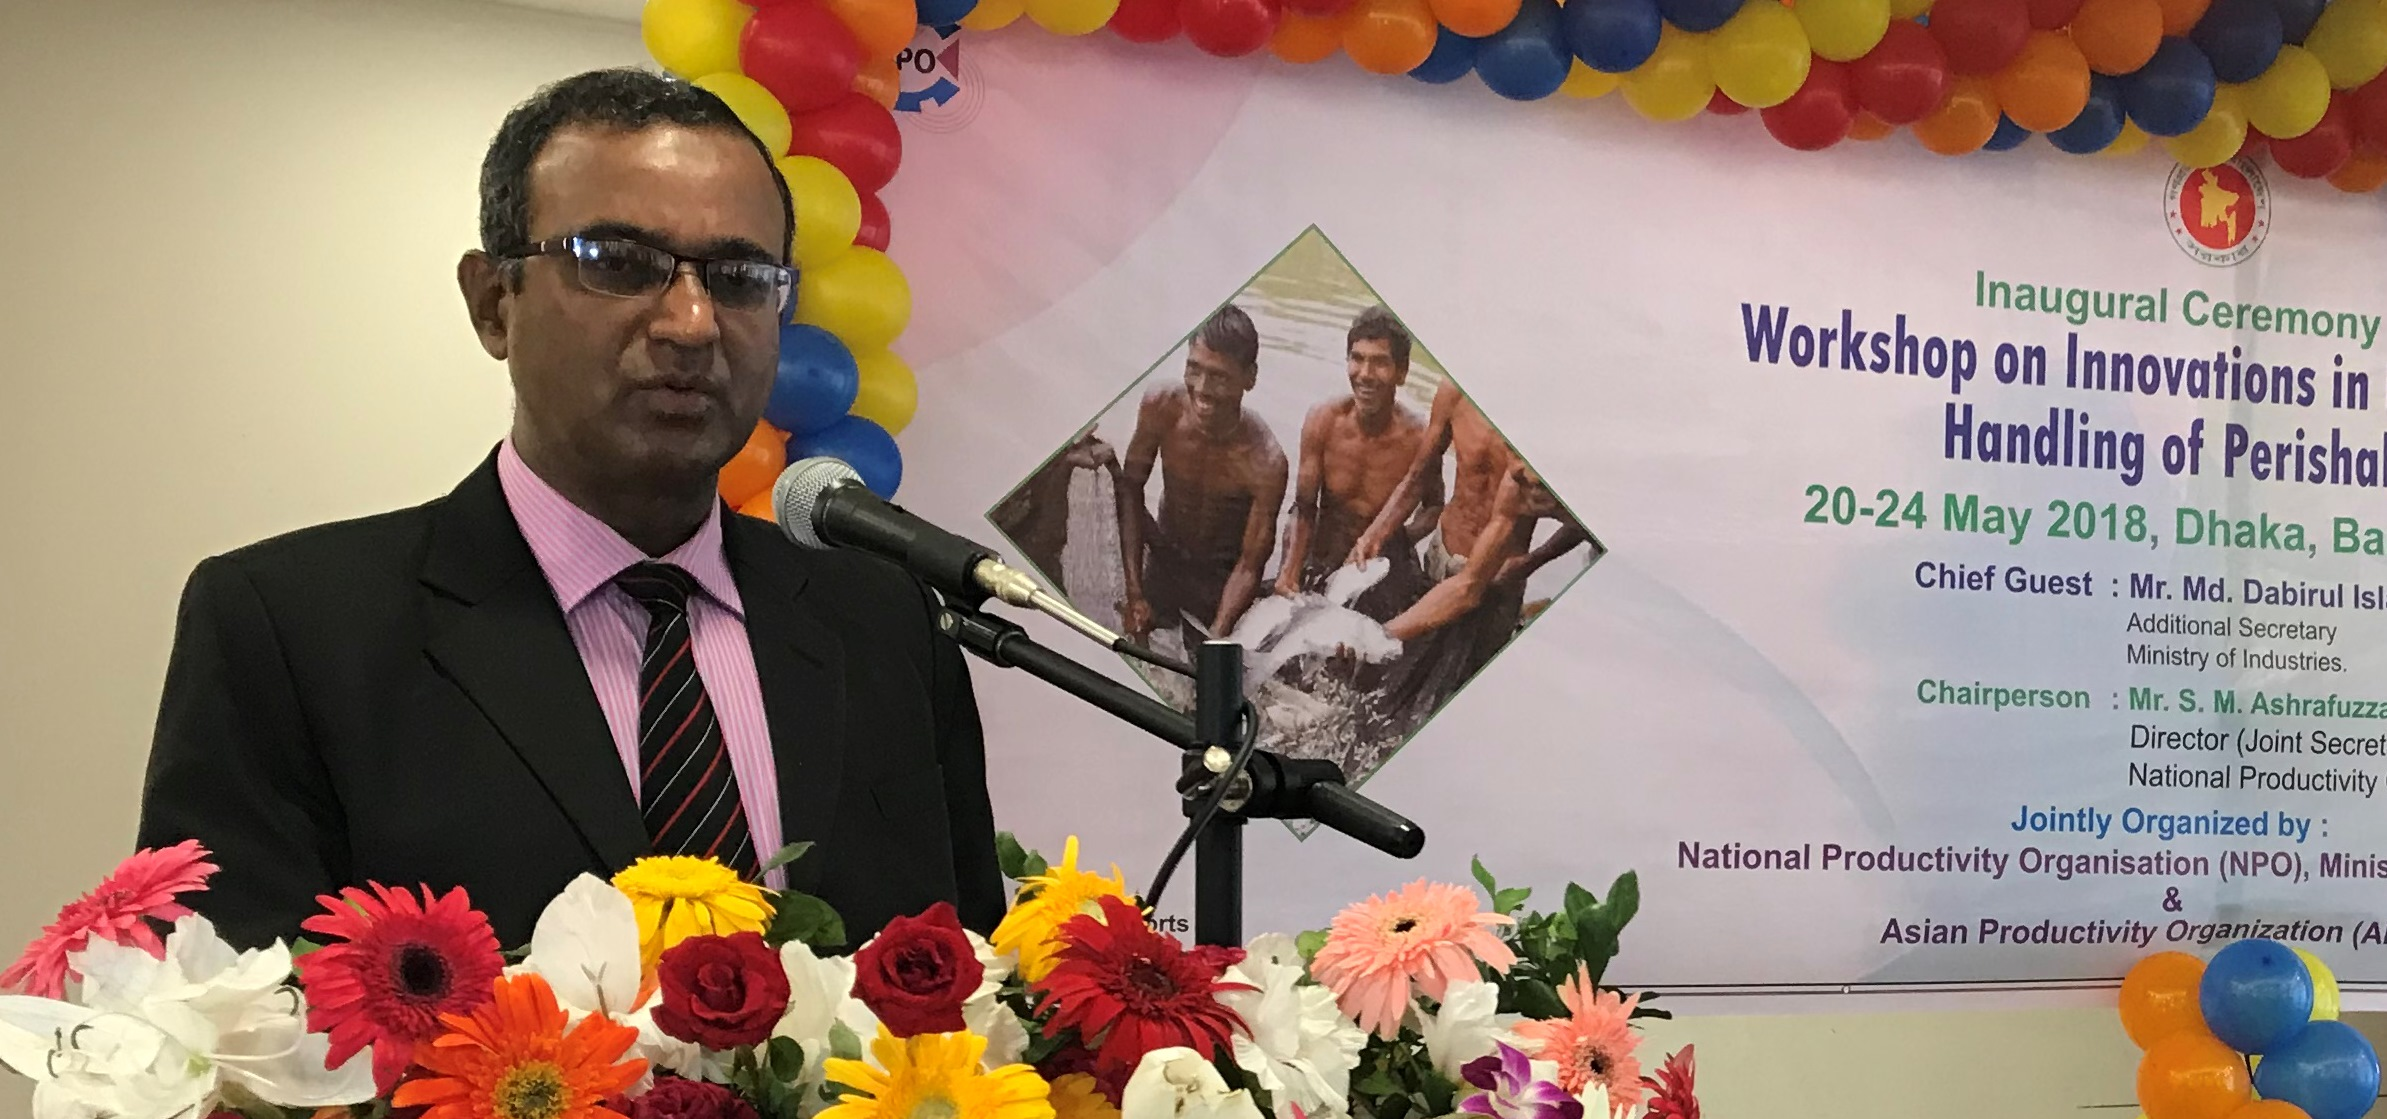 Additional Secretary Md. Dabirul Islam of the Ministry of Industry of Bangladesh delivering inaugural address during the opening session of the workshop on Innovations in Postharvest Handling of Perishables, Dhaka, 20 May 2018.